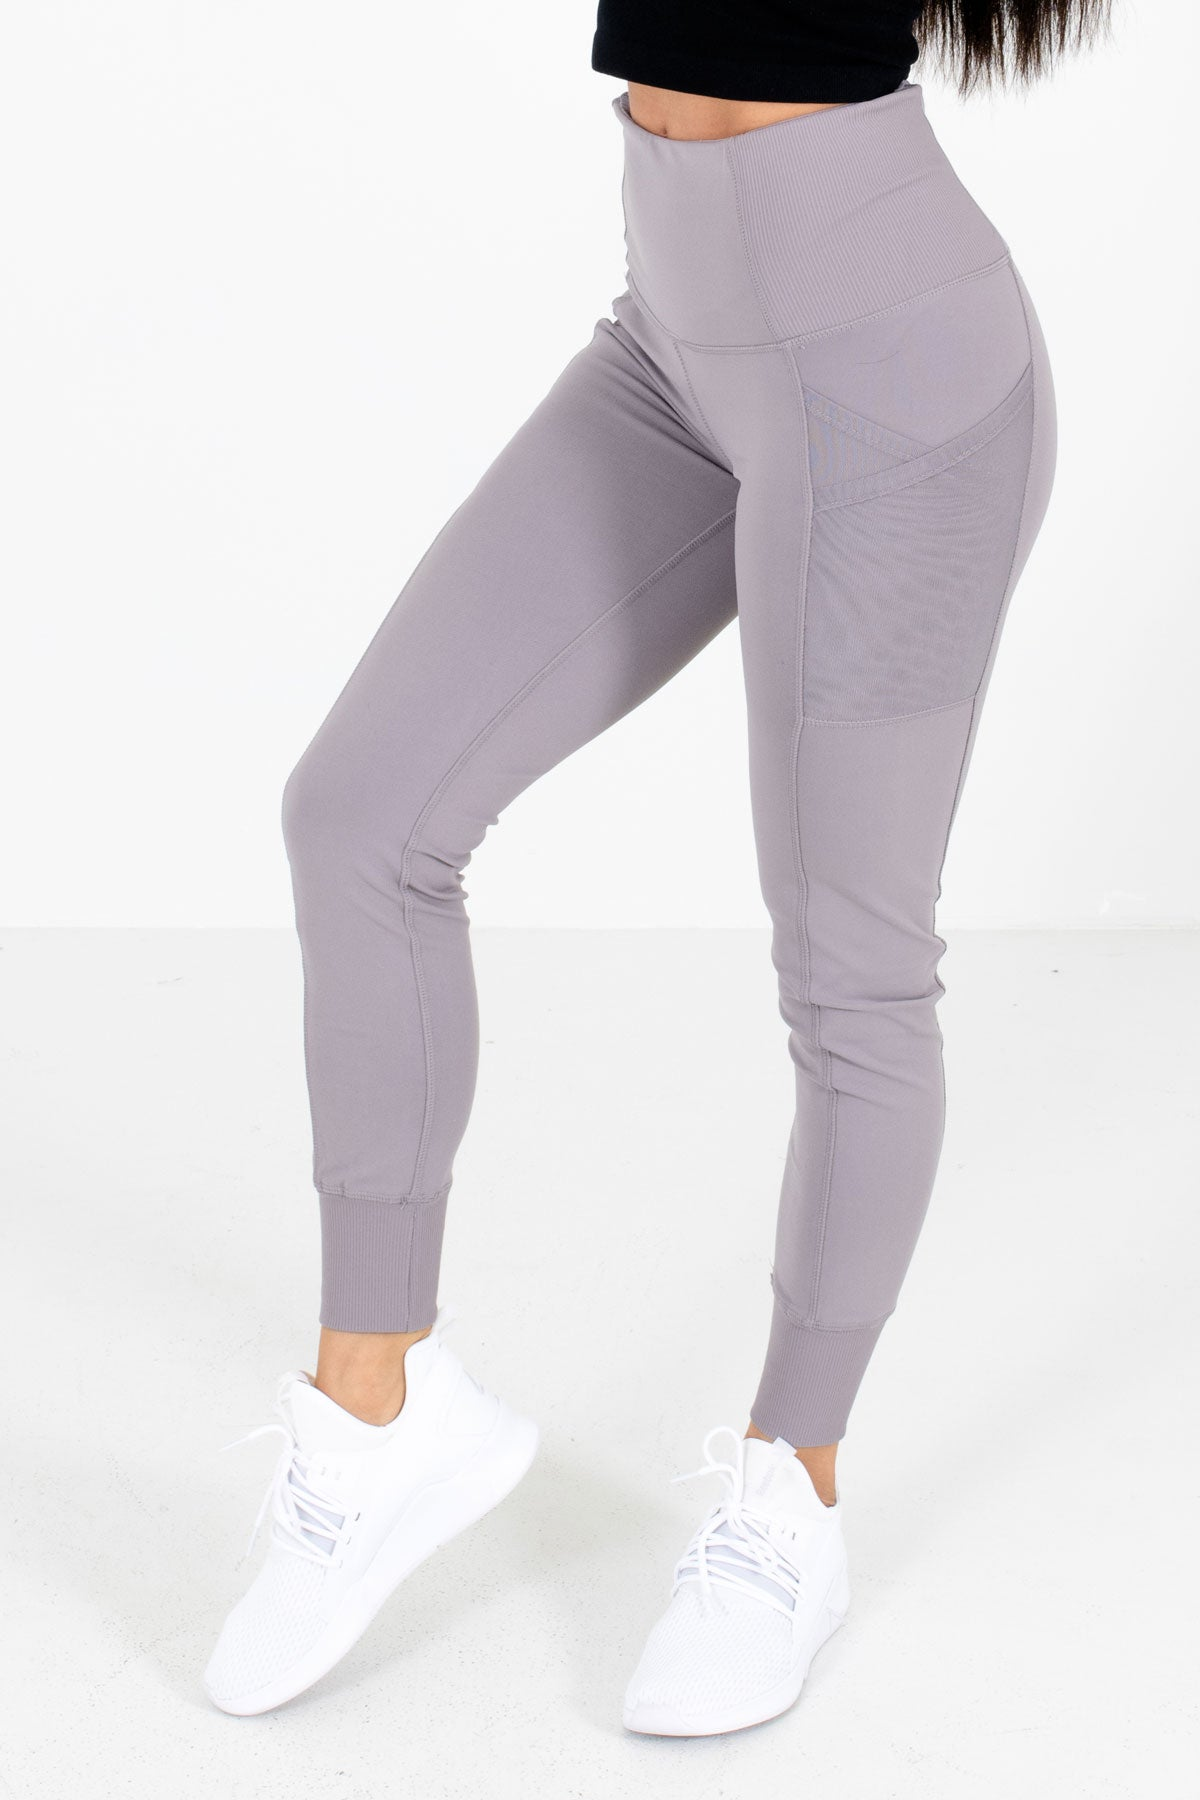 Dusty Purple Super High Quality Premium Boutique Active Leggings for Women